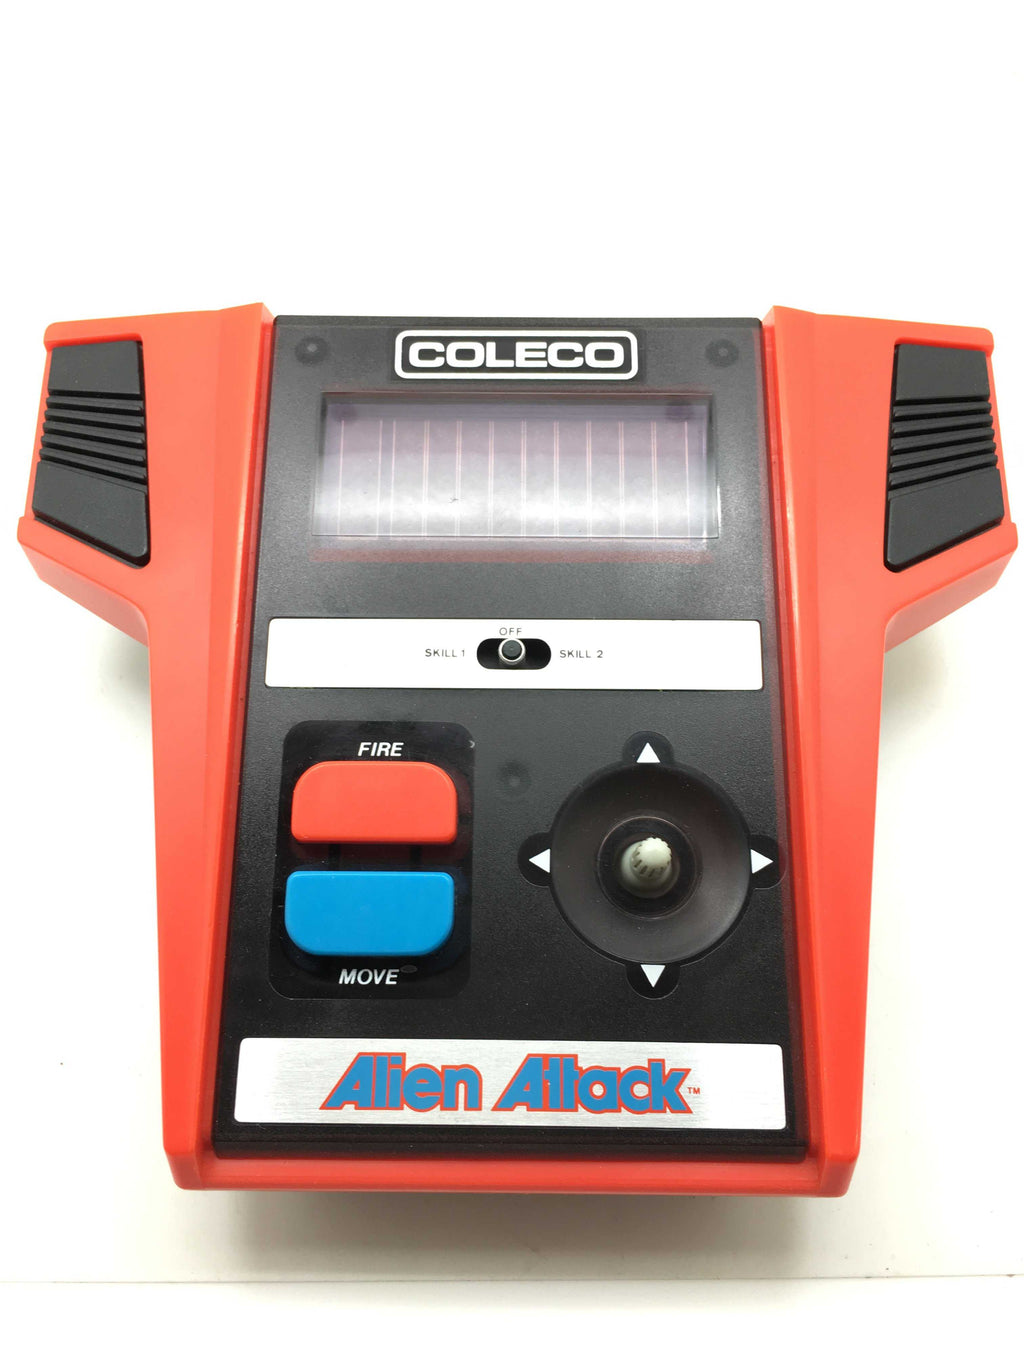 Circa 1980's Handheld Arcade Video Game ALIEN ATTACK COLECO ~Hand held Tabletop